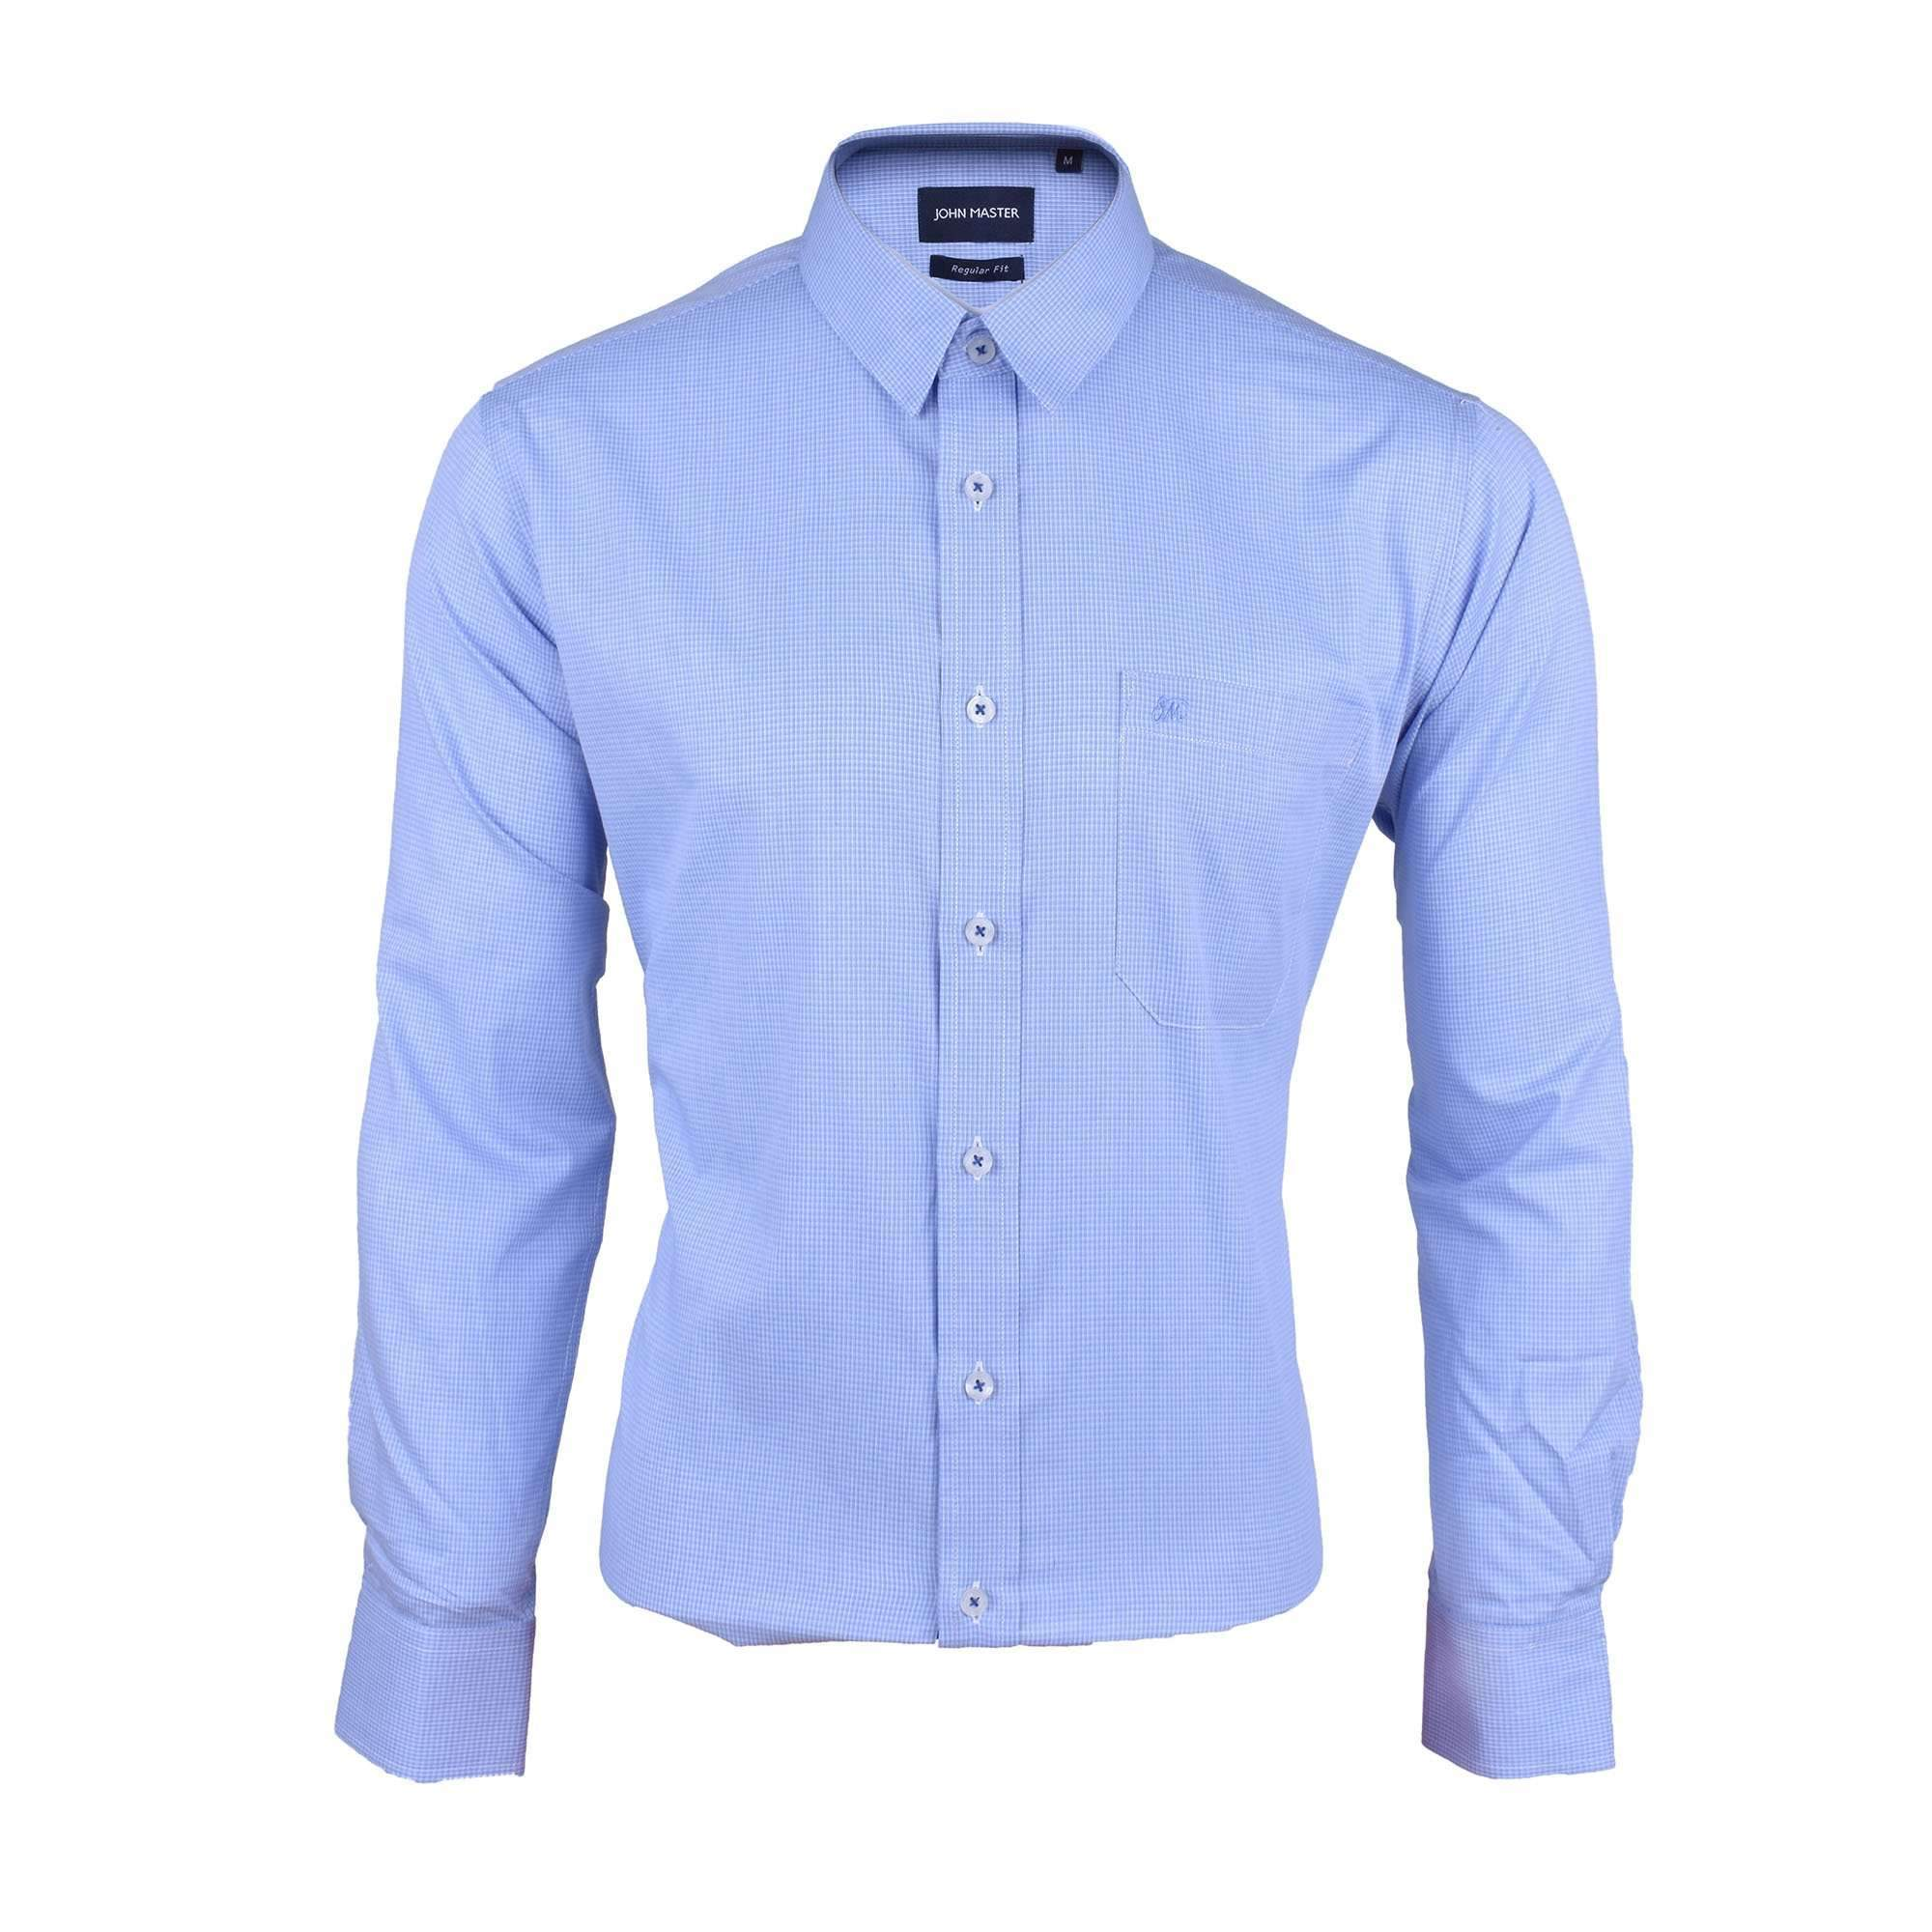 John Master Business Shirt Long Sleeve Medium Blue 7087005 : Buy John Master online at CMG.MY